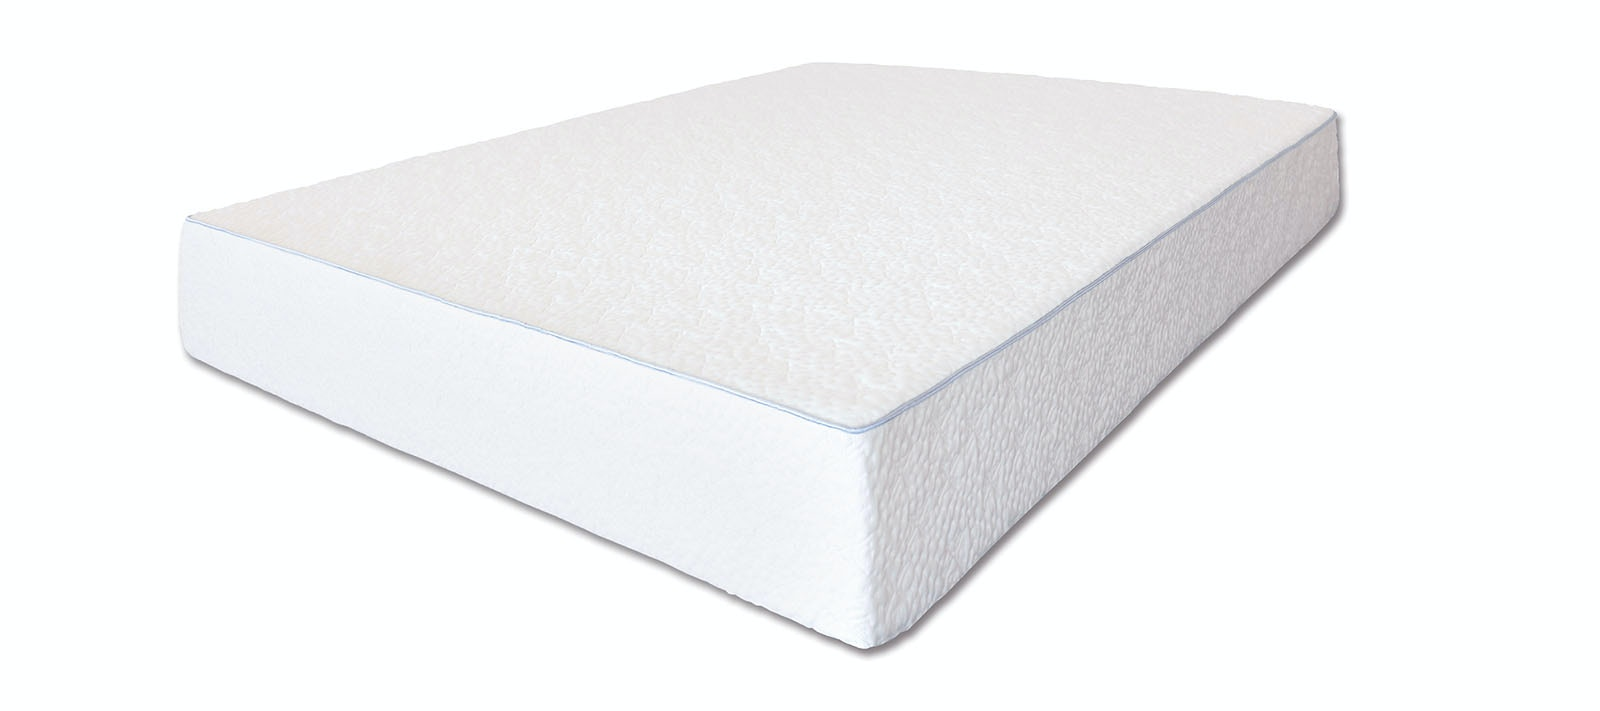 Furniture Of America Bedroom 10 Memory Foam Mattress Queen Dm162n